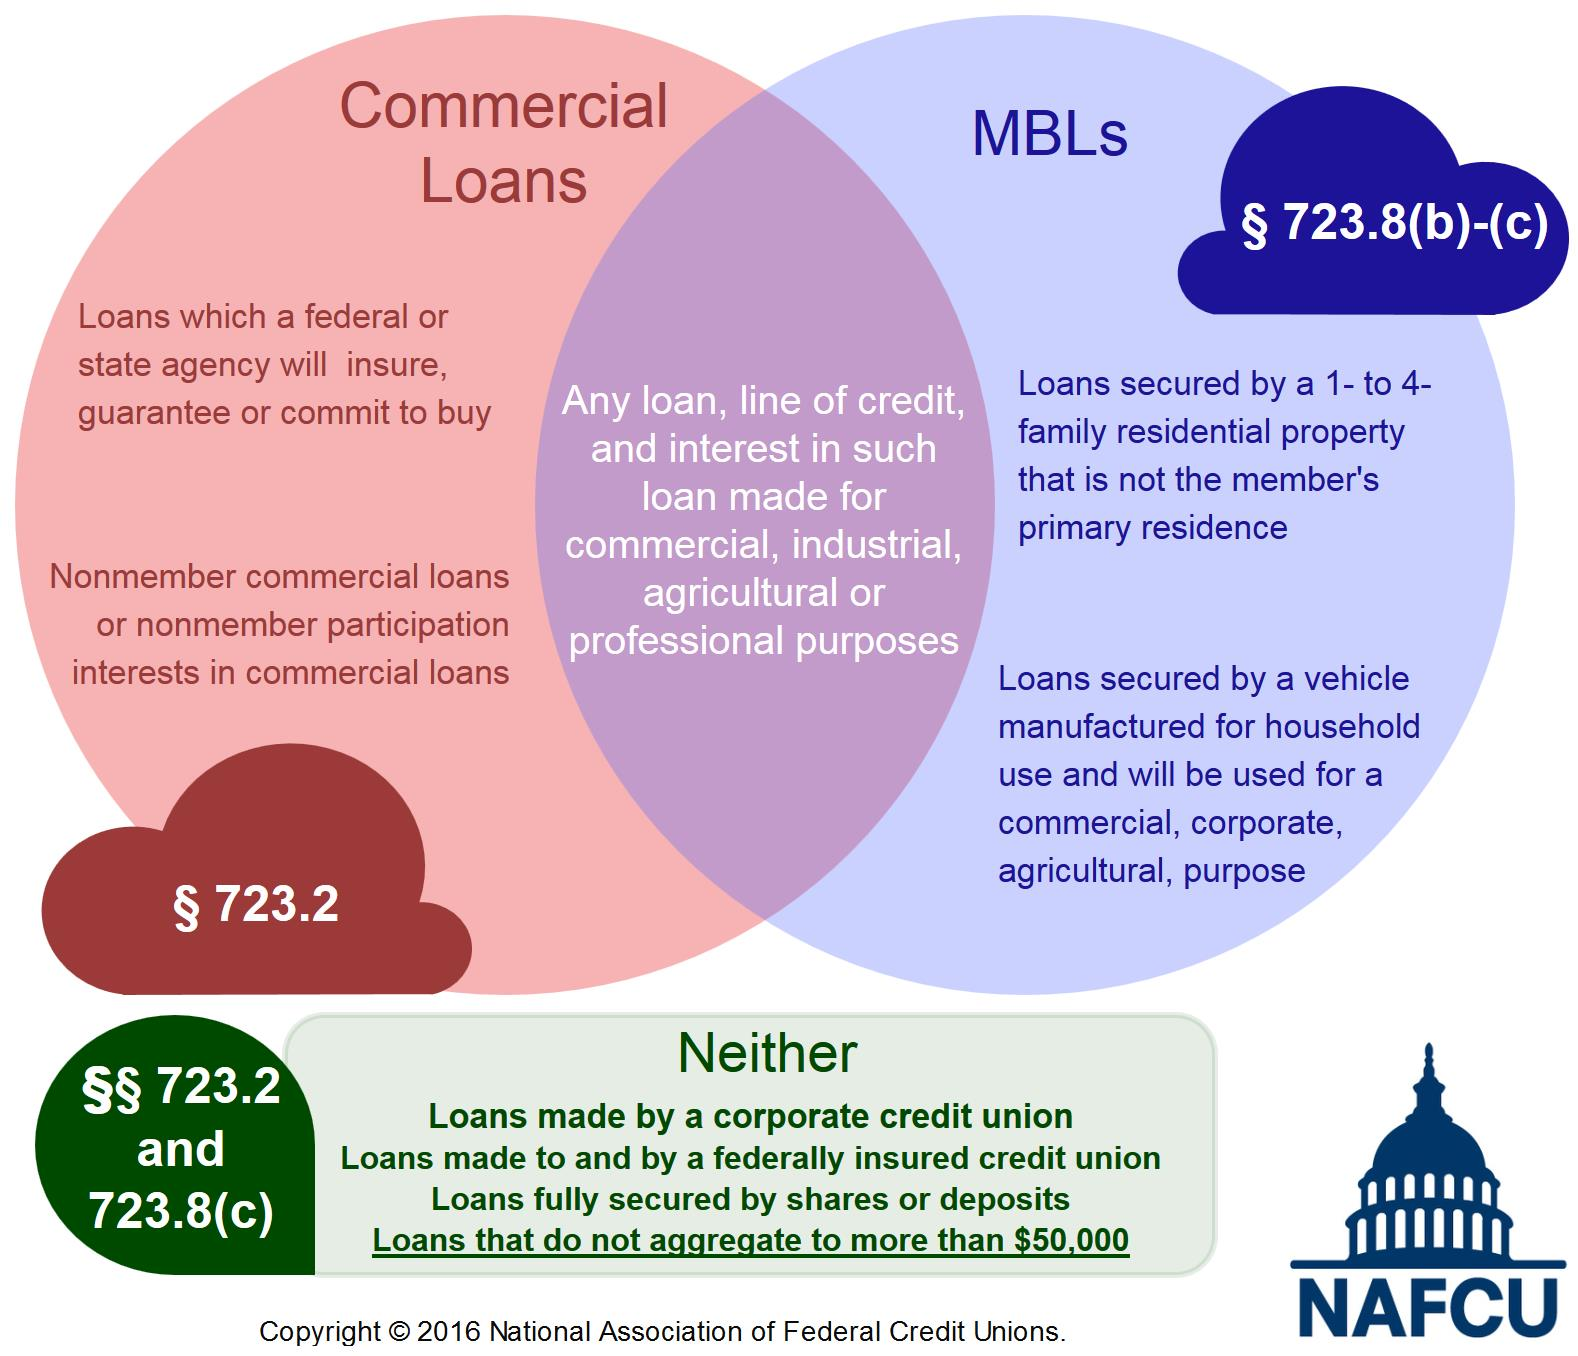 Nafcu compliance blog ncuas new mbl rule commercial loans mbl ven diagram pooptronica Choice Image